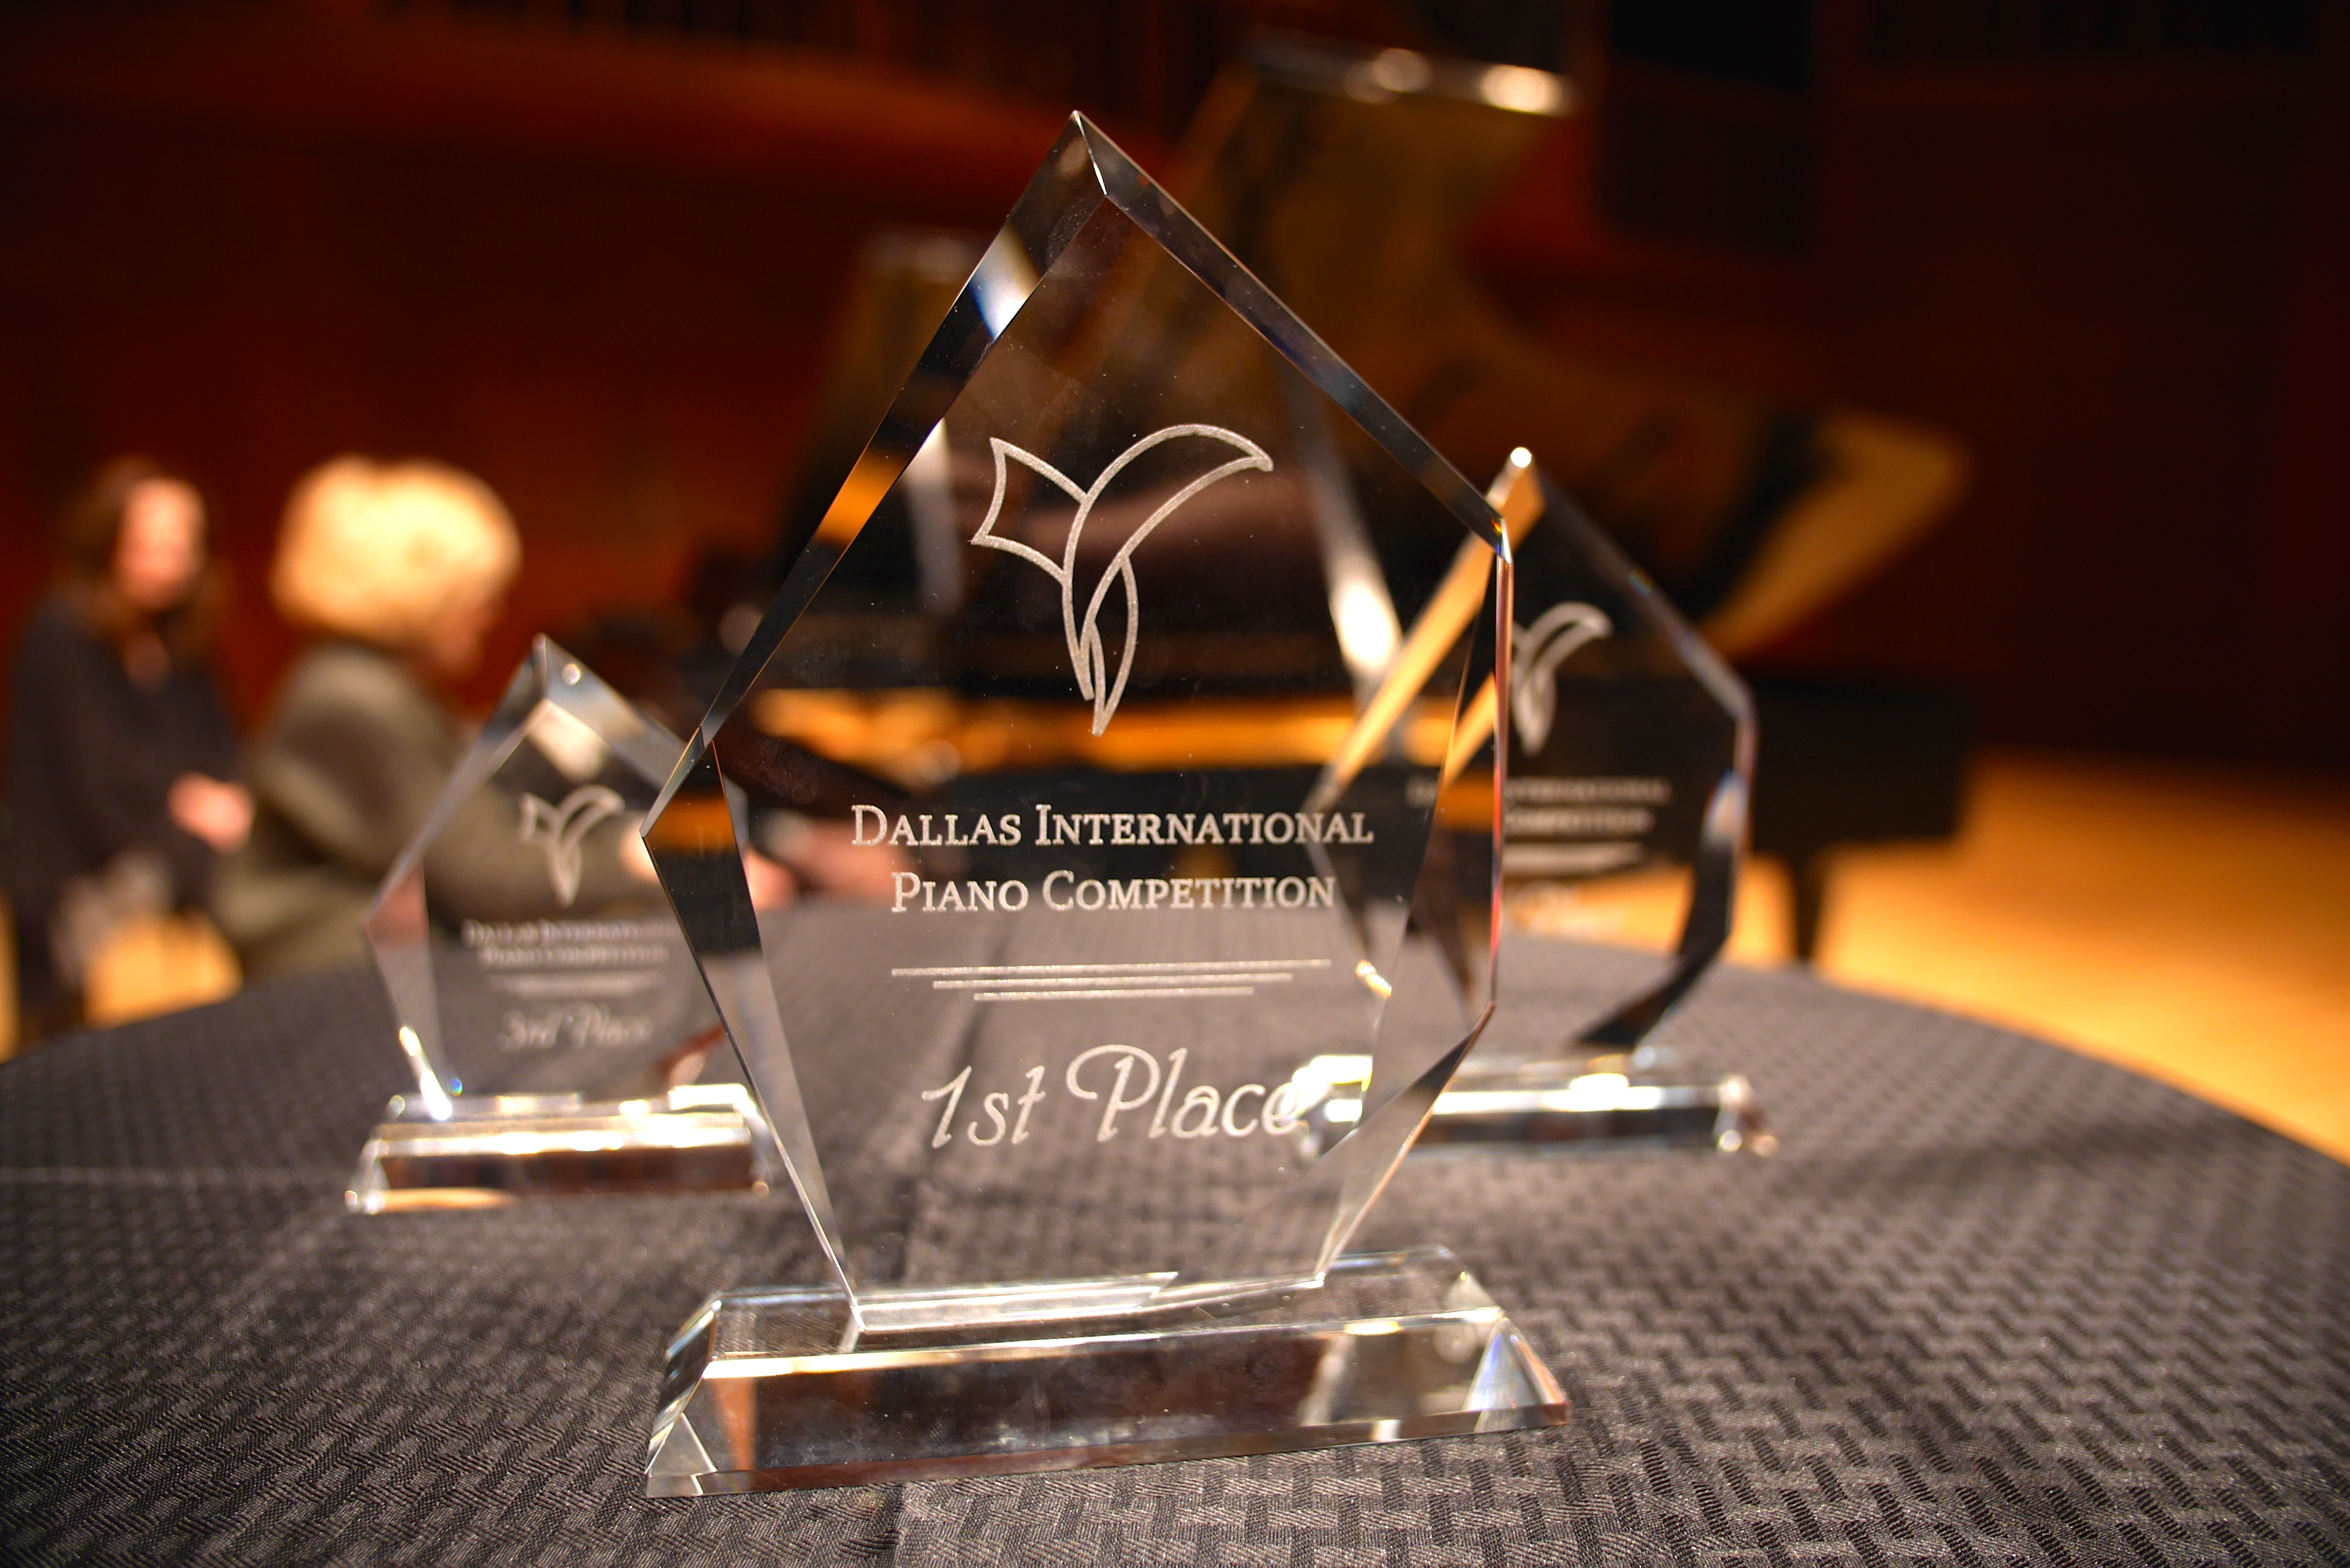 Dallas International Piano Competition, Dallas Chamber Symphony, Awards